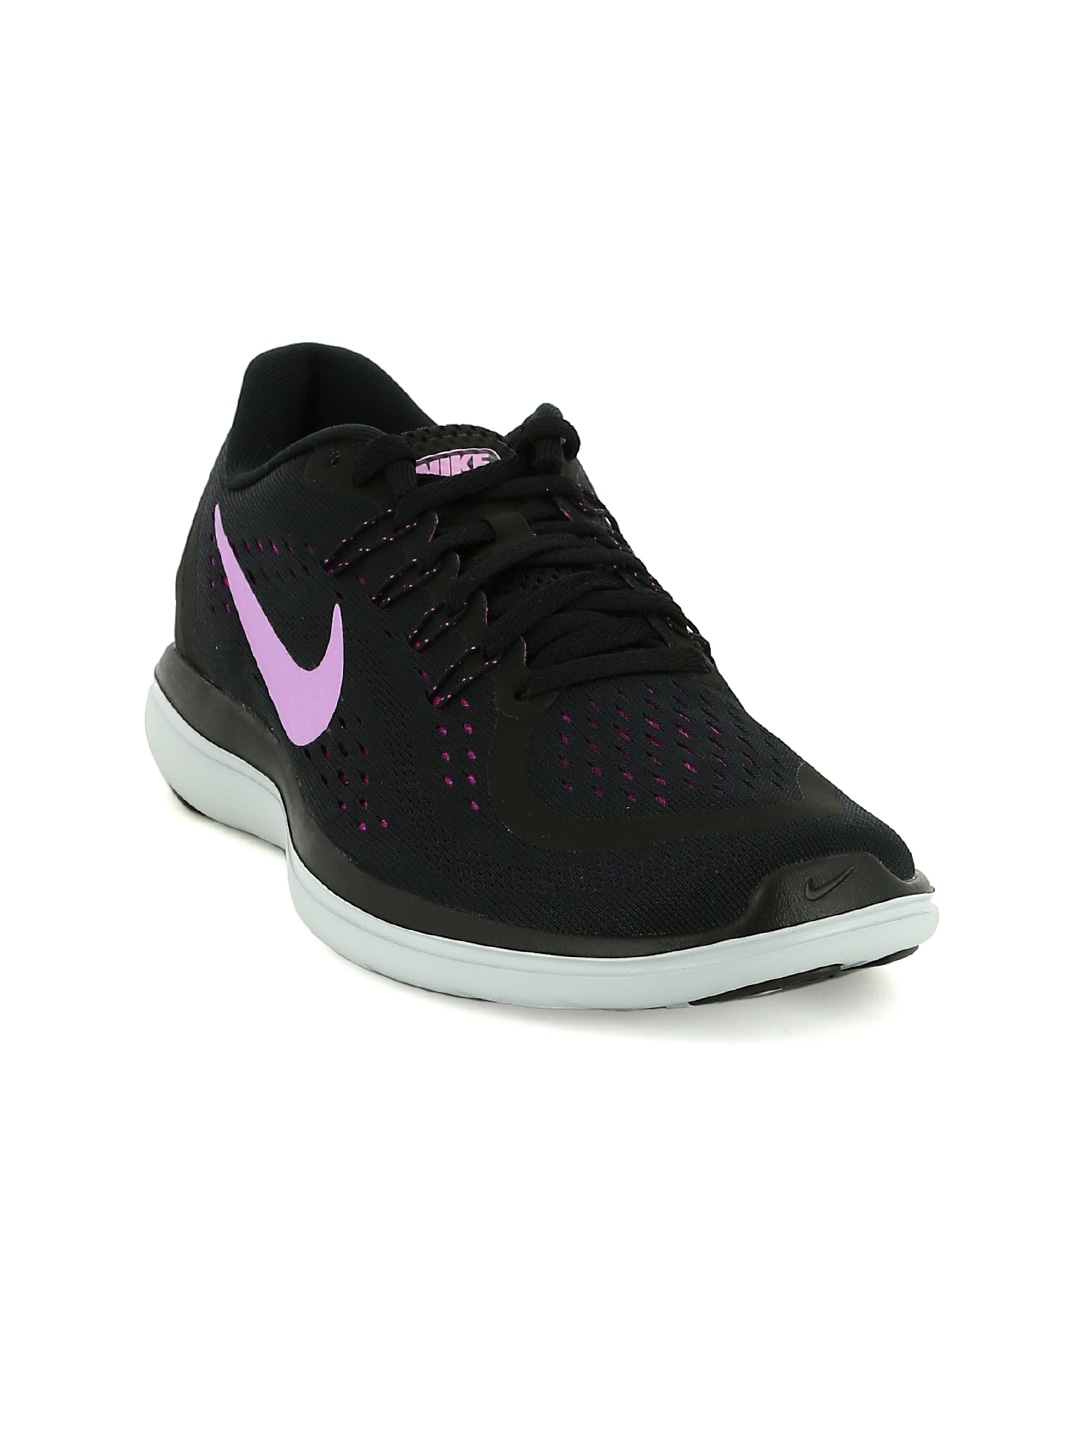 Women s Nike Shoes - Buy Nike Shoes for Women Online in India 2c56dbd148